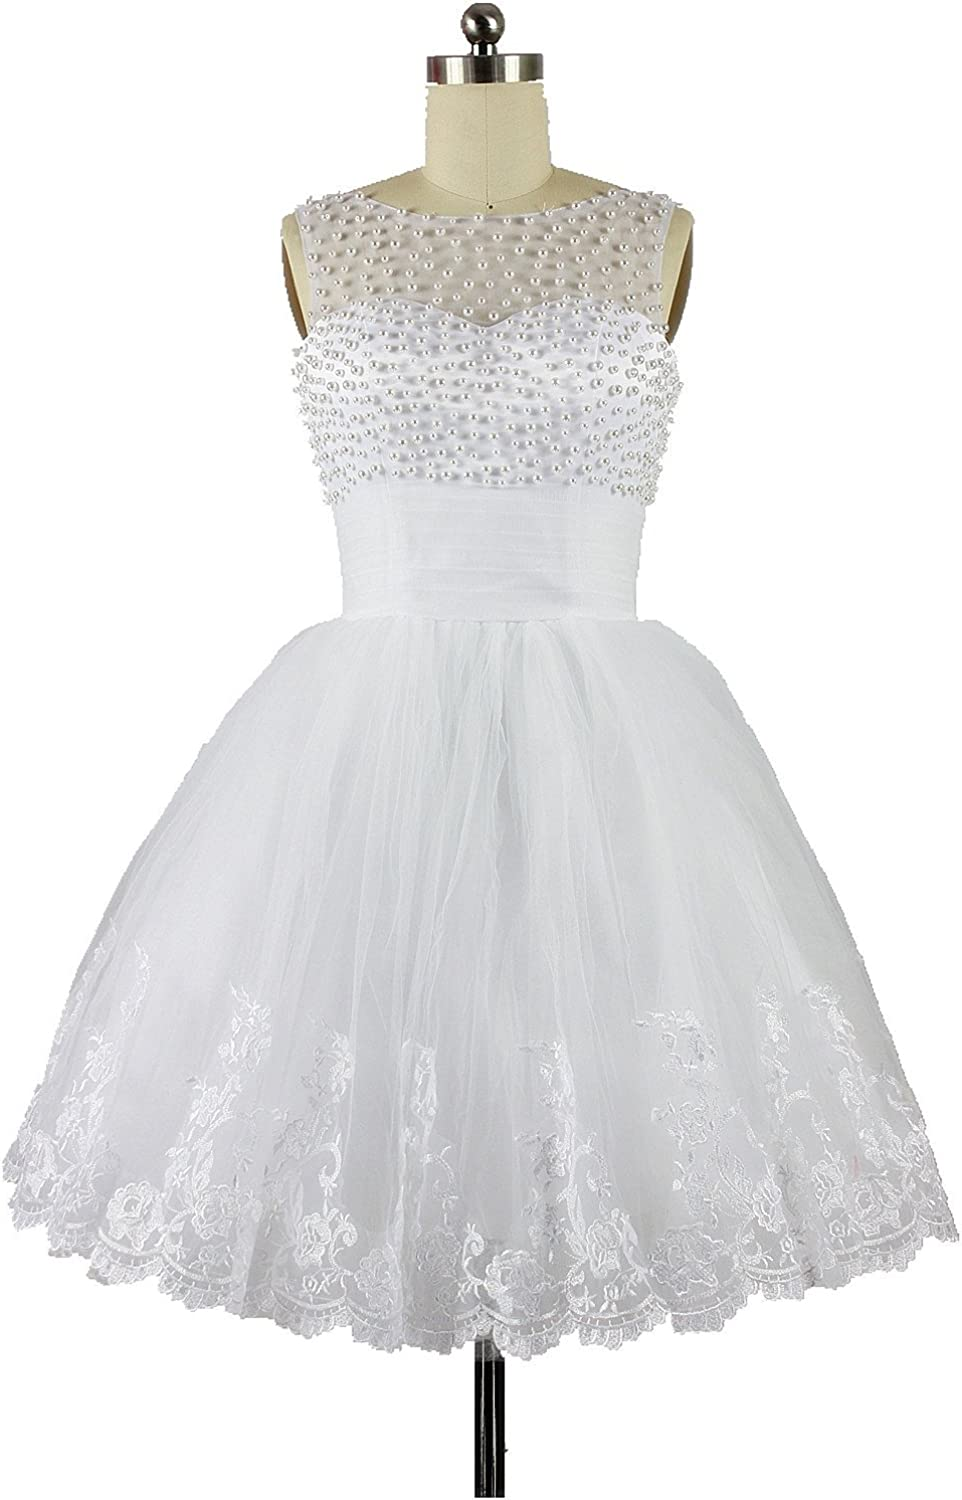 CharmingBridal Ball Gown Homecoming White Wedding Party Dress Short Prom Dress